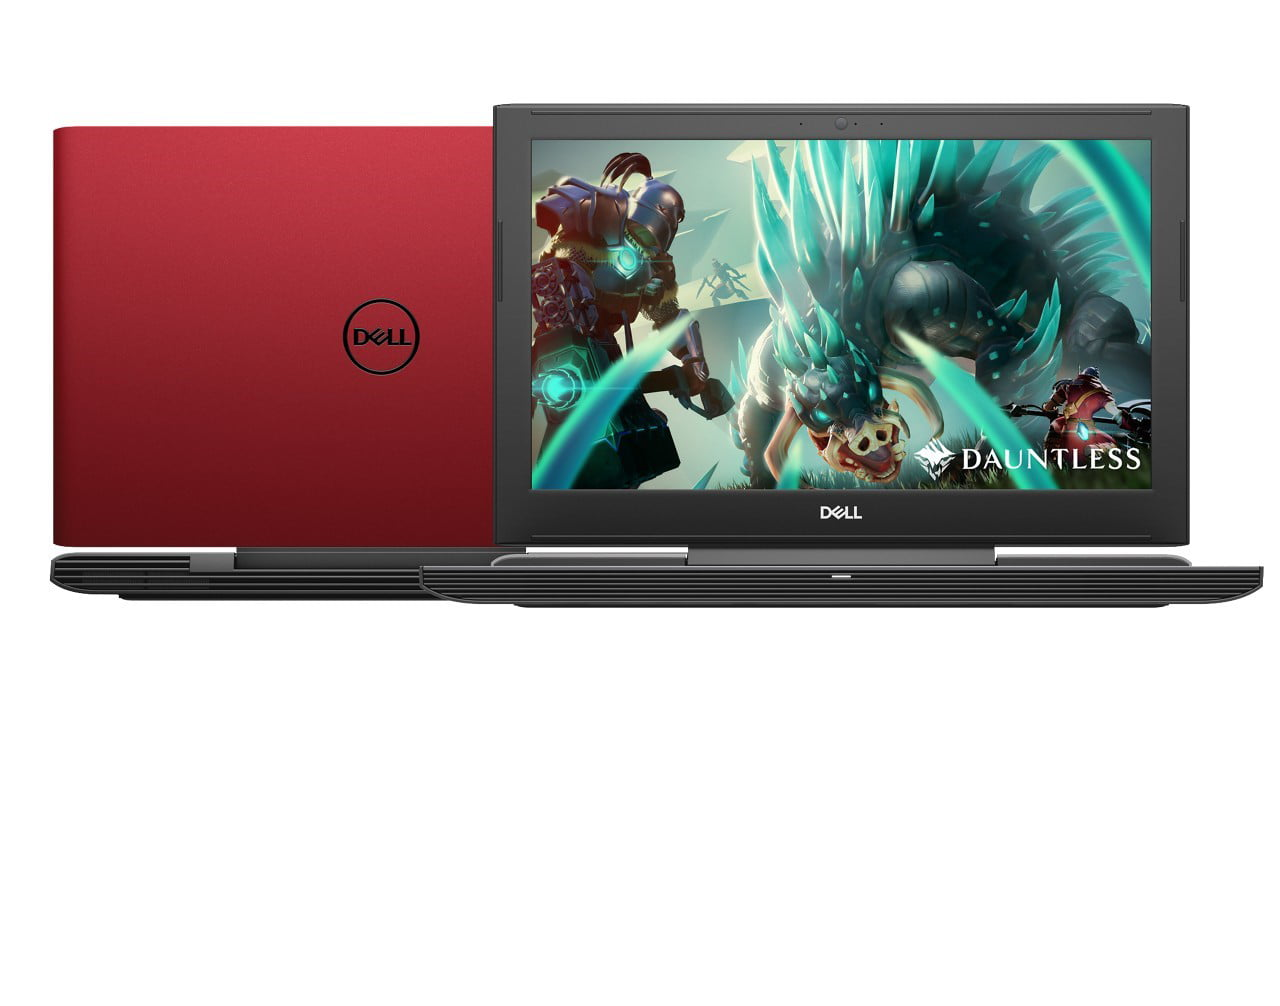 Dell G5 Gaming Laptop 15 6 Full Hd Intel Core I7 8750h Nvidia Geforce Gtx 1050 Ti 4gb 1tb Hdd 128gb Ssd Storage 8gb Ram G5587 7037red Pus Walmart Com Walmart Com